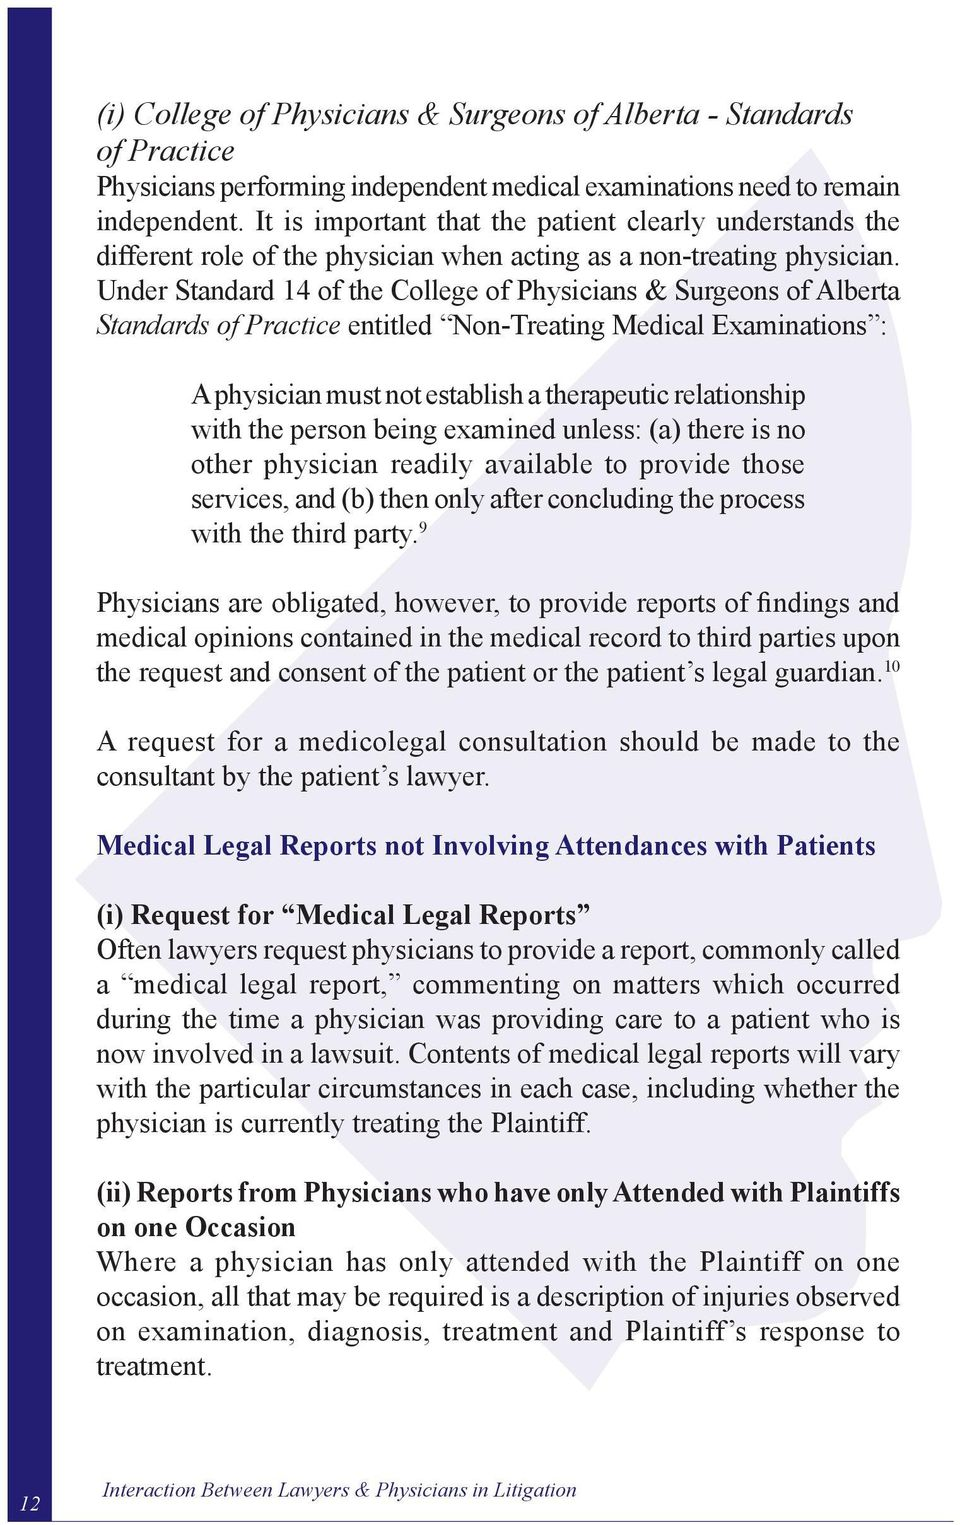 Under Standard 14 of the College of Physicians & Surgeons of Alberta Standards of Practice entitled Non-Treating Medical Examinations : A physician must not establish a therapeutic relationship with